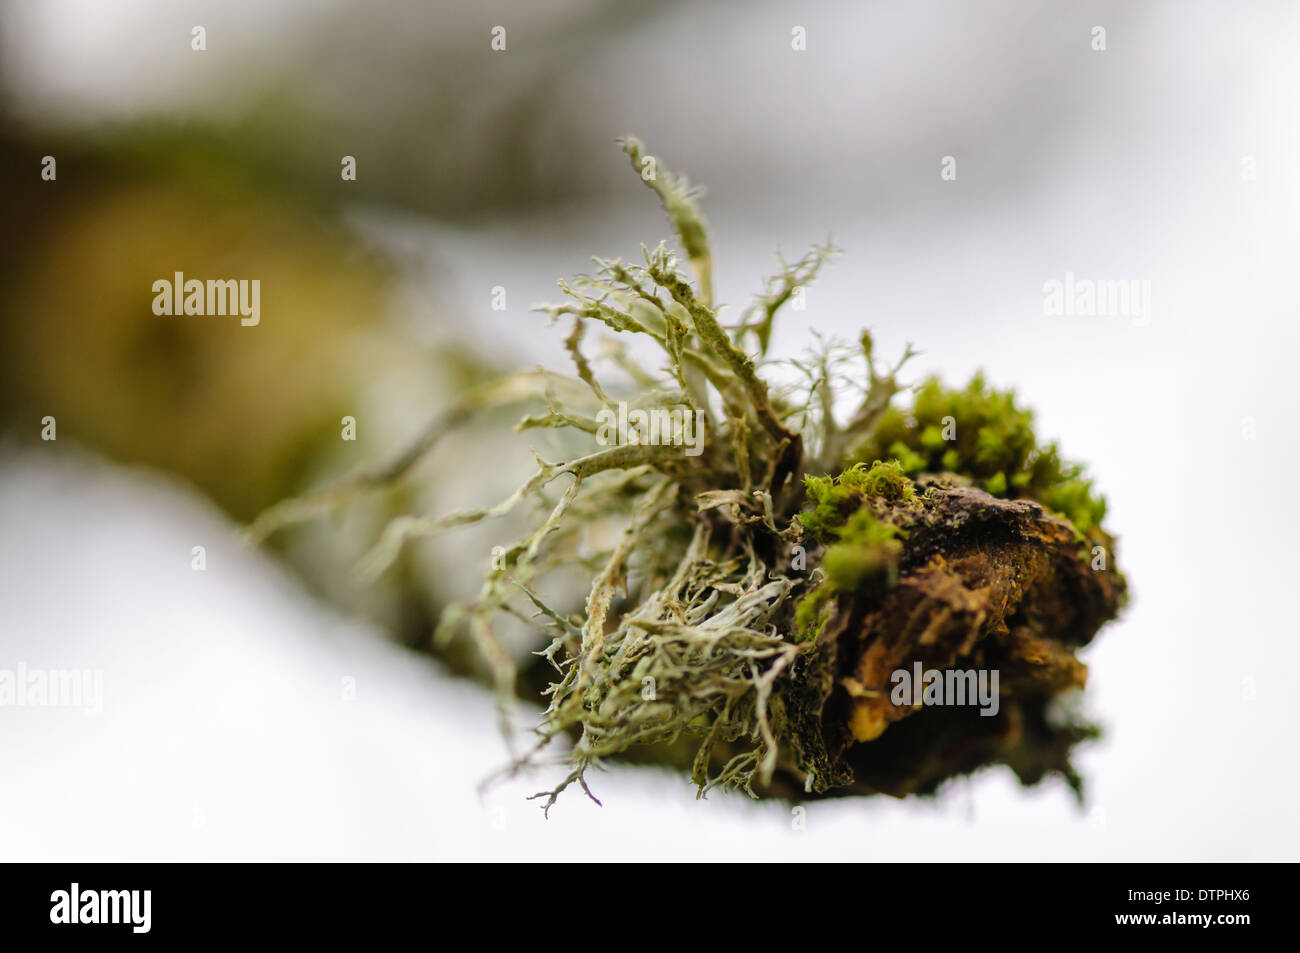 Lichen and moss growing on the end of a branch - Stock Image